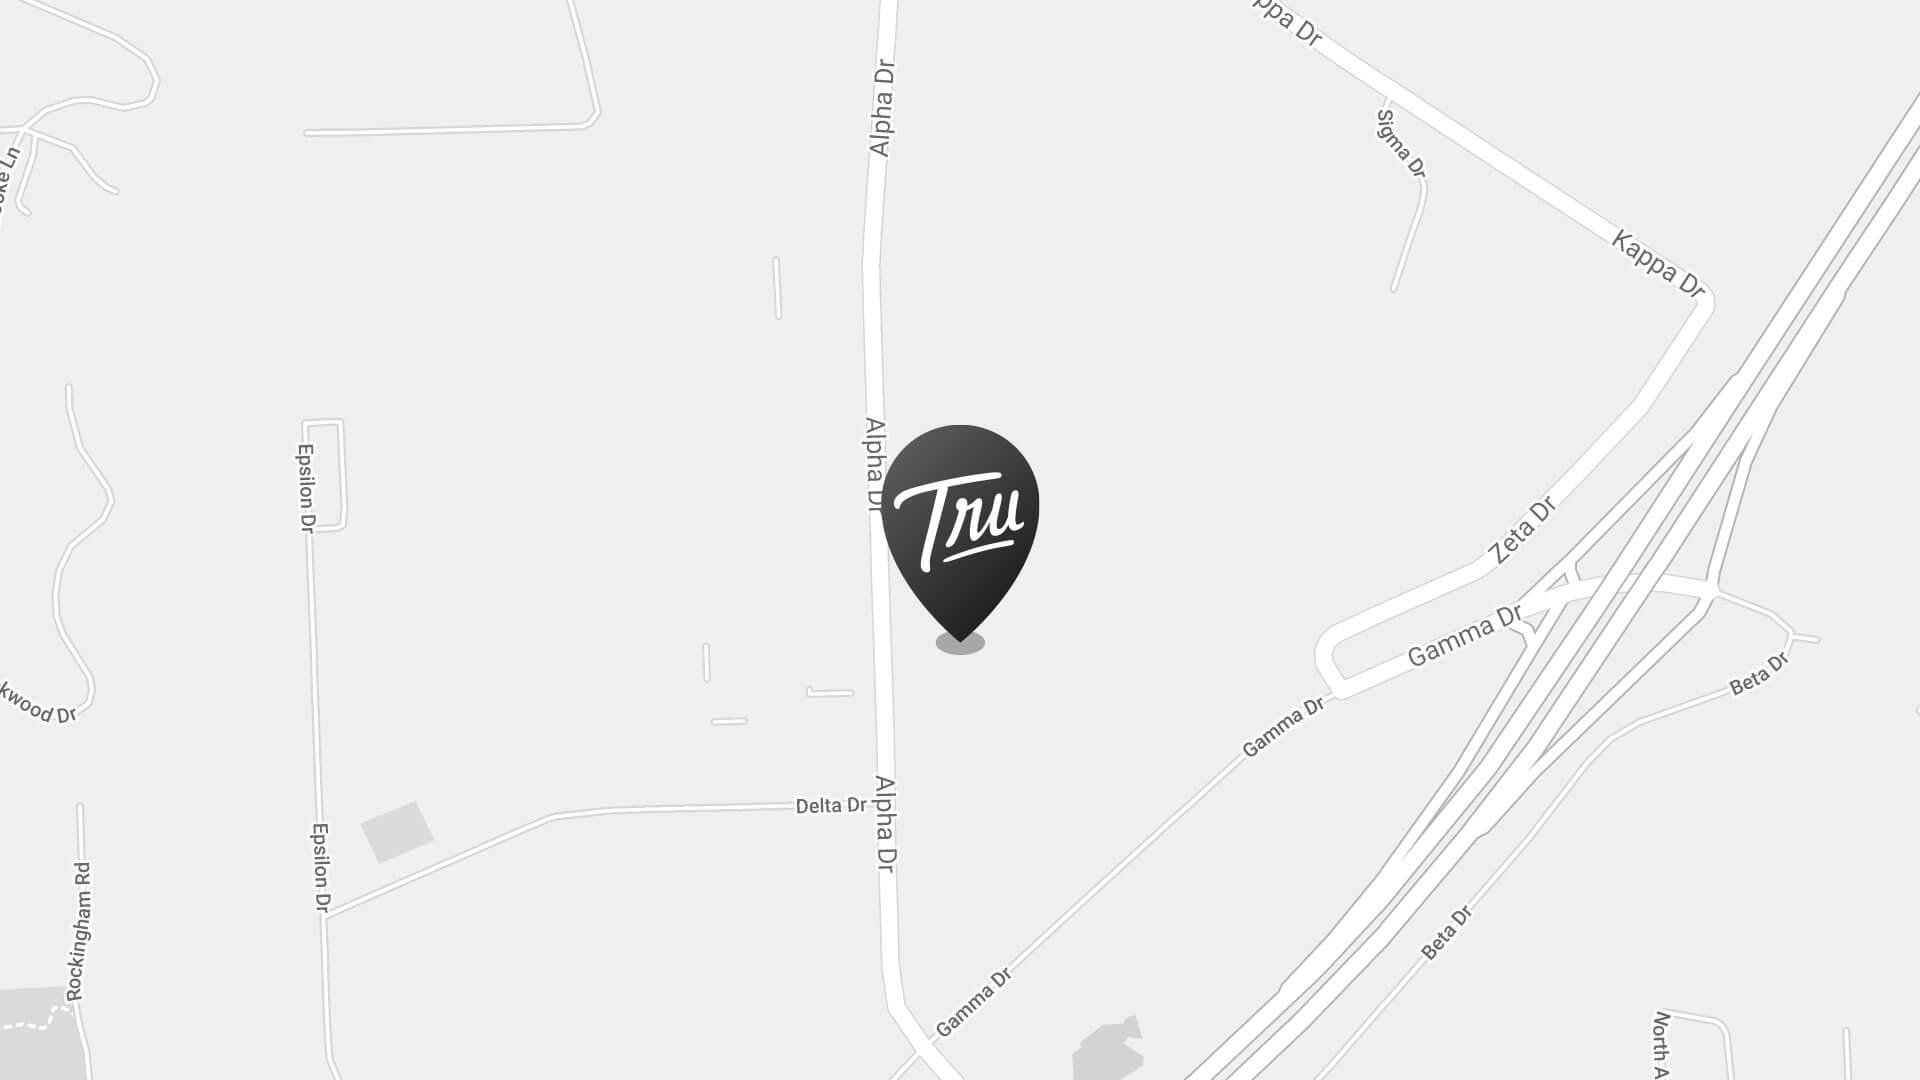 Map with a pin on the Trufood Alpha facility